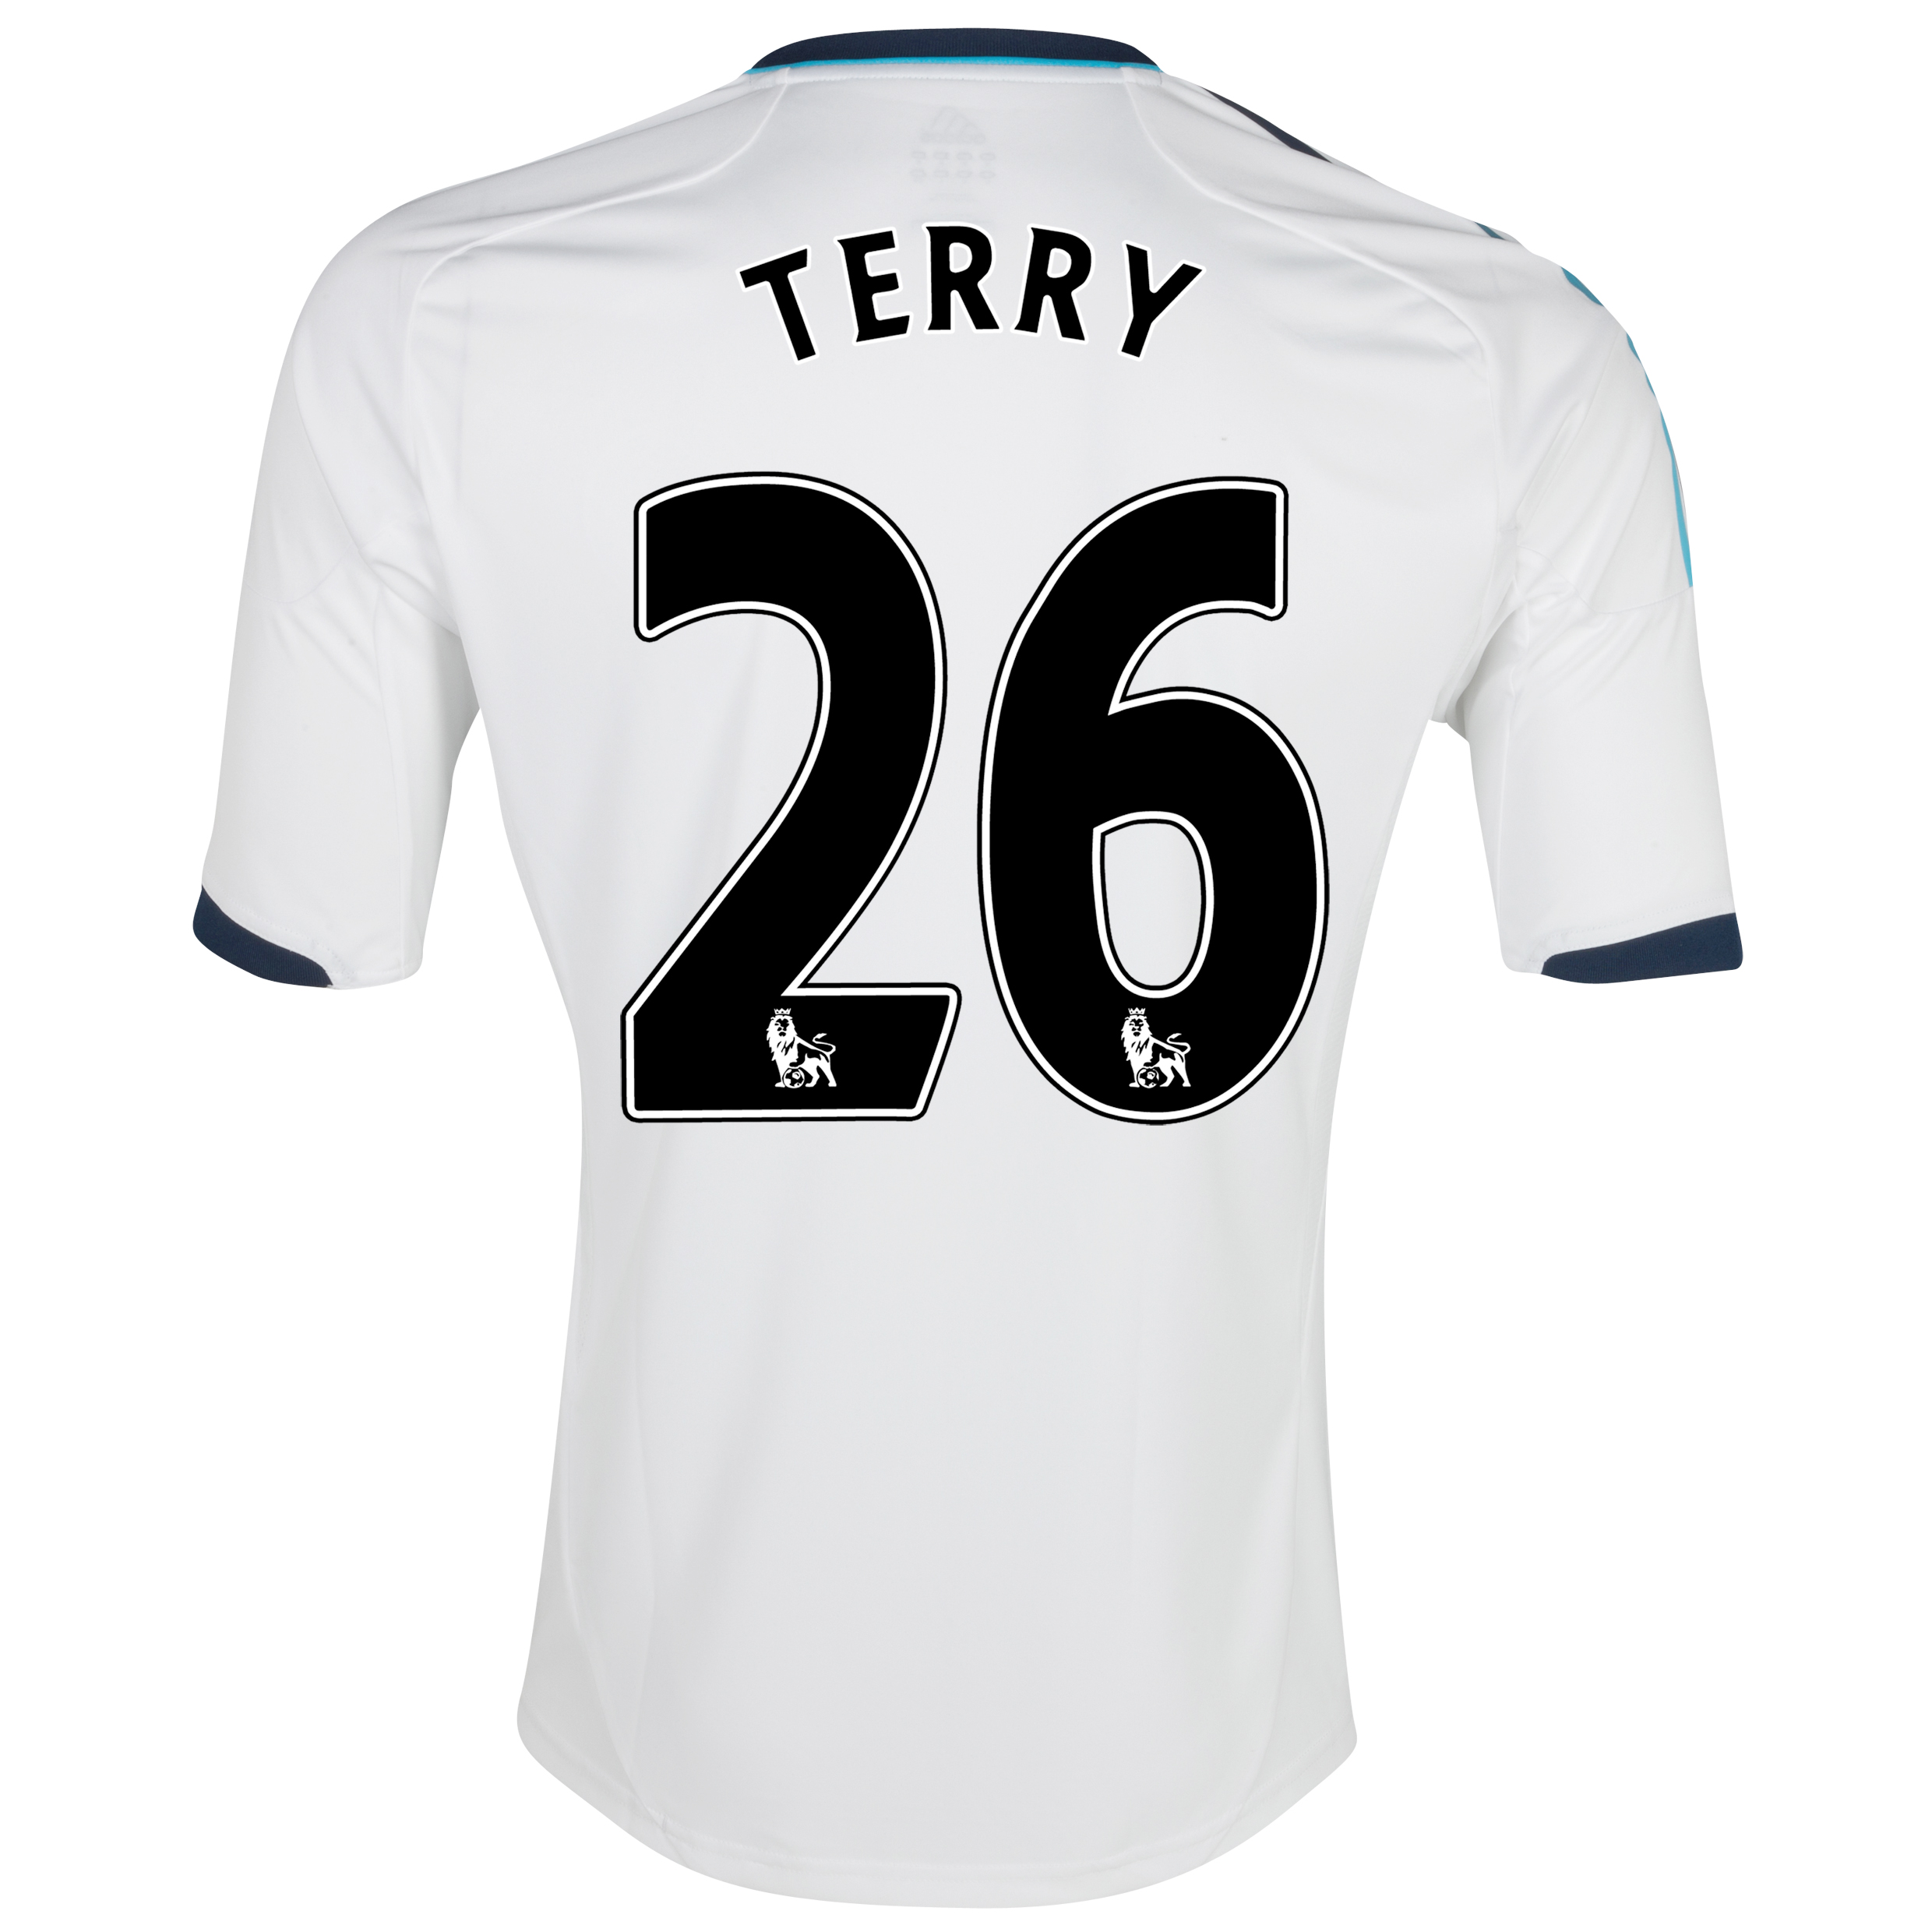 Chelsea Away Shirt 2012/13 - Youths with Terry 26 printing